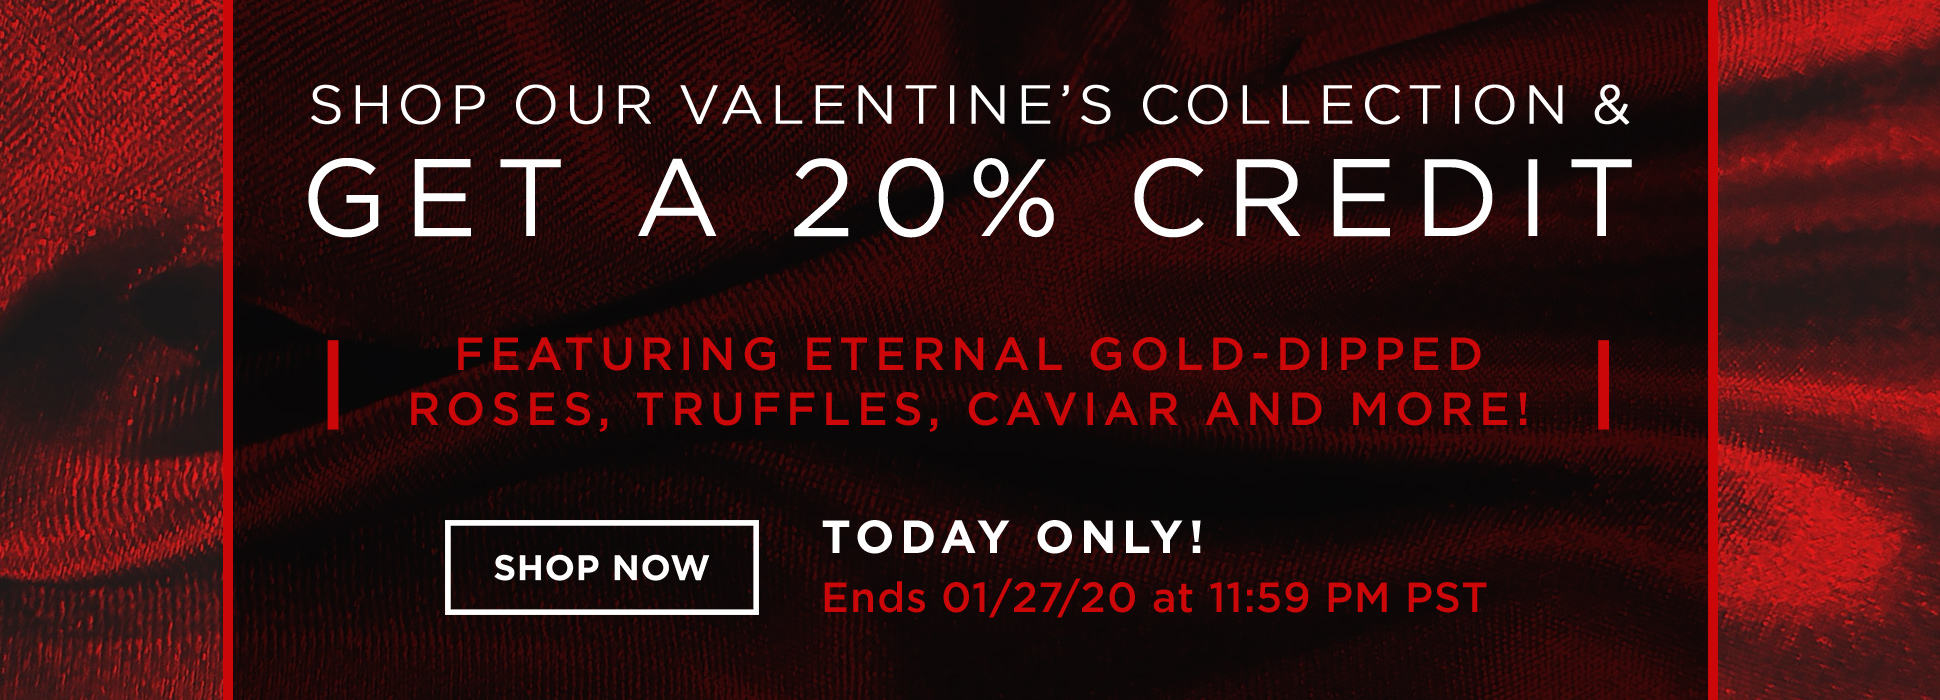 20200127: VDay Store Promo 20% Credit